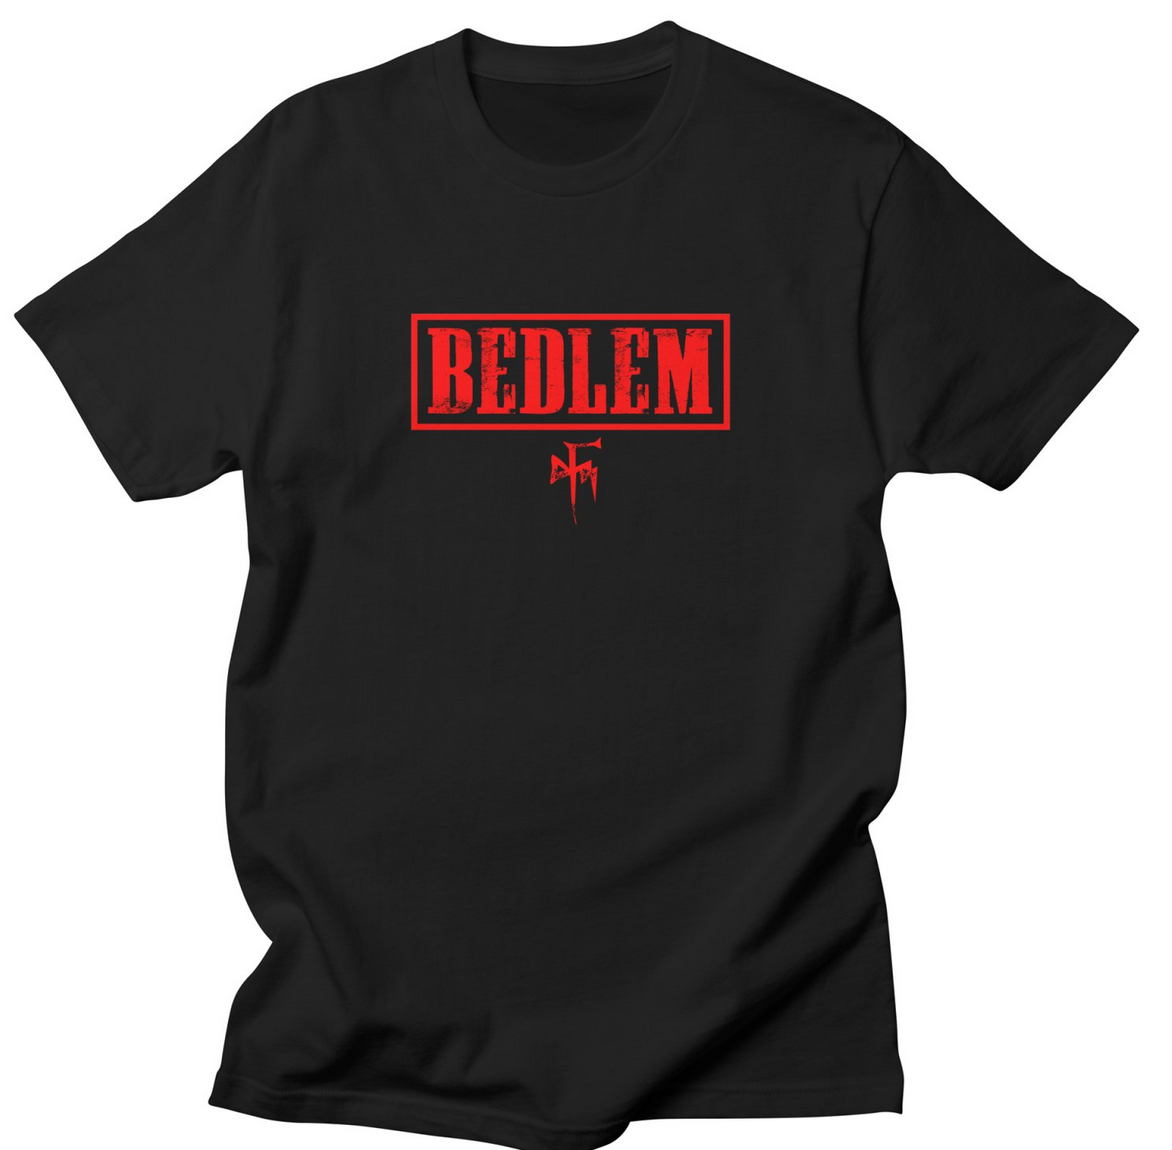 """Click here to order the """"RED BEDLEM LOGO"""" shirt and more"""